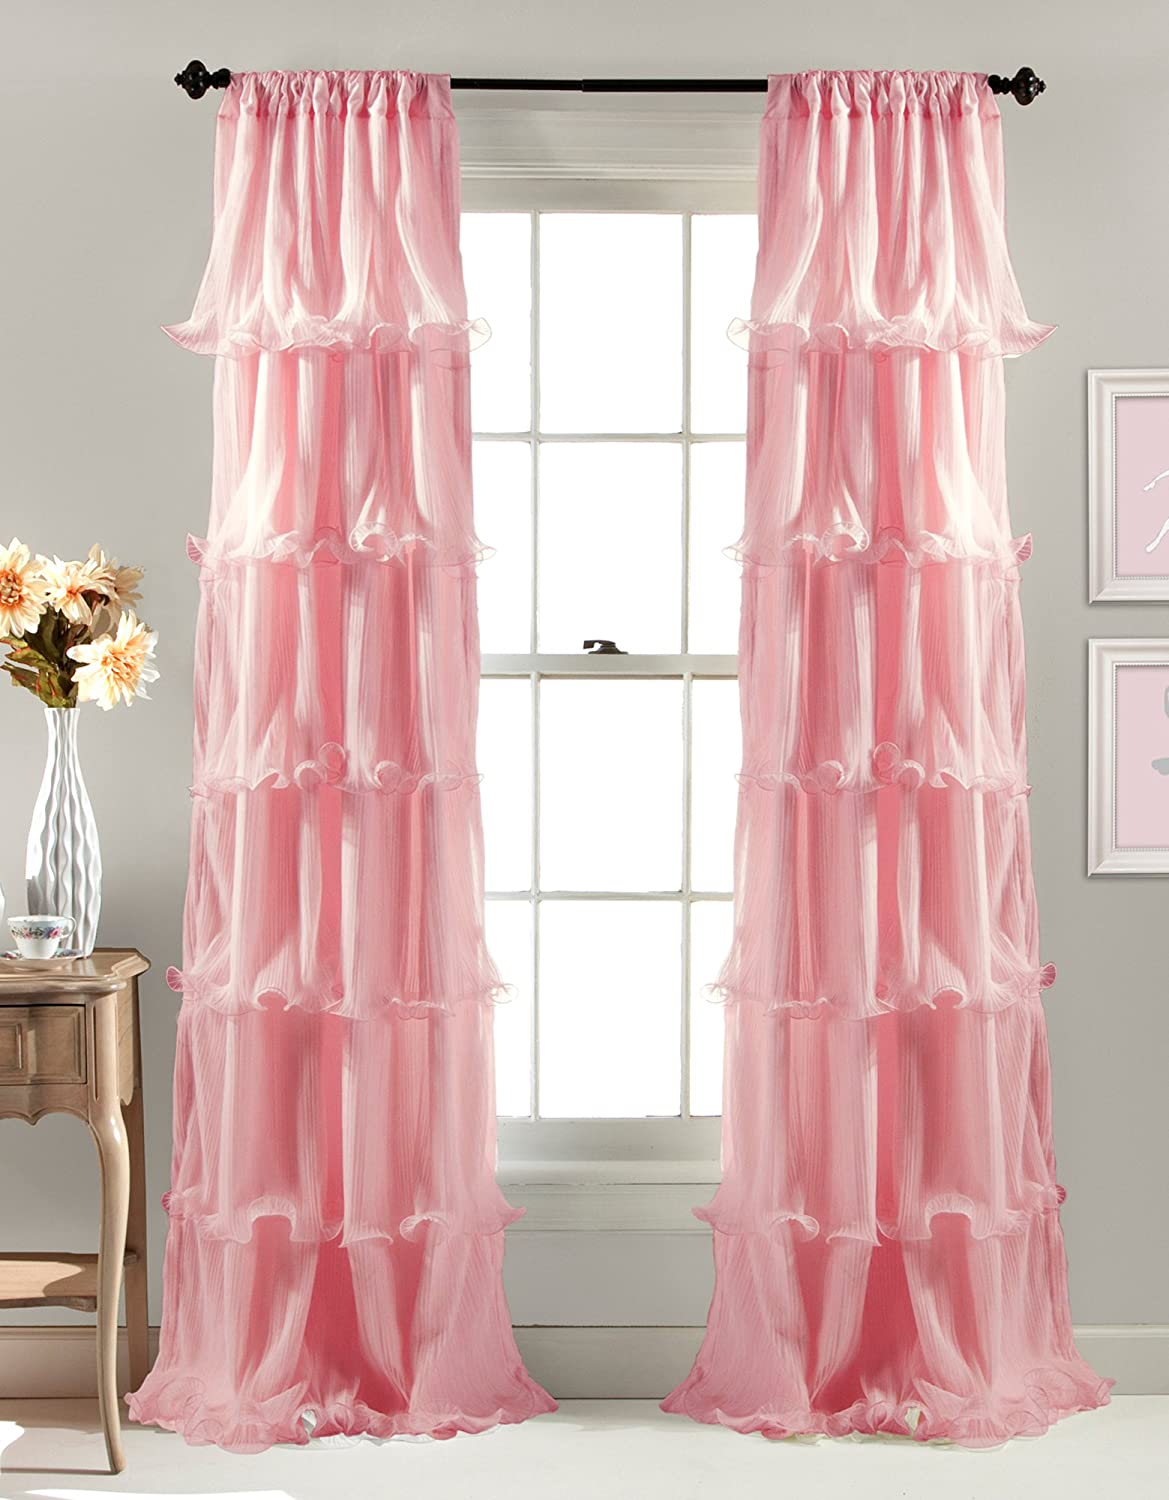 drapes set blackout ip walmart eclipse thermaliner panels pink curtain com light of